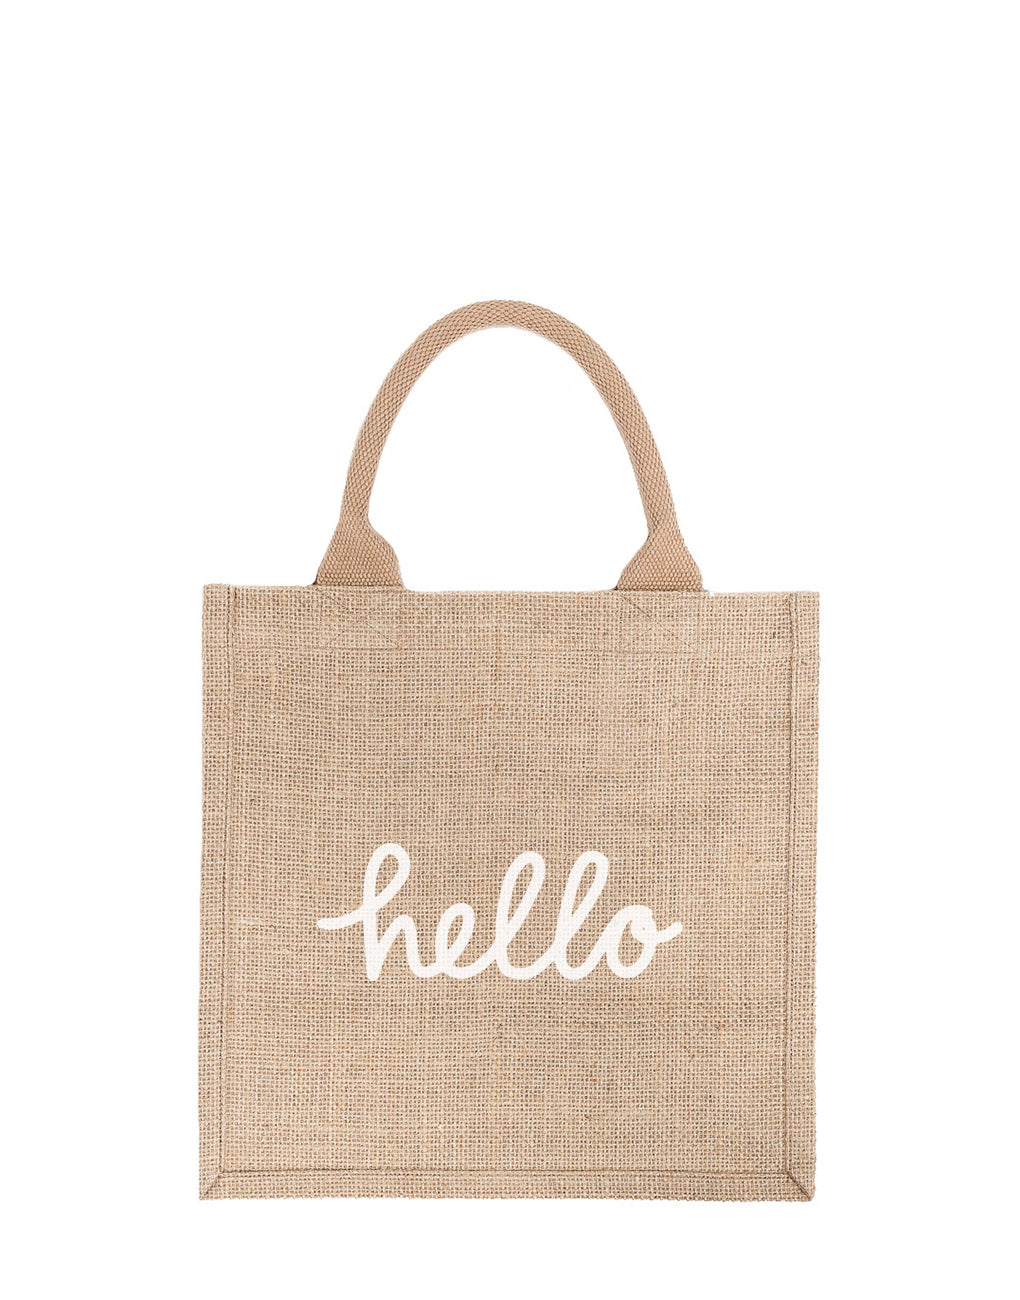 Large Hello Reusable Gift Tote In White Font | The Little Market